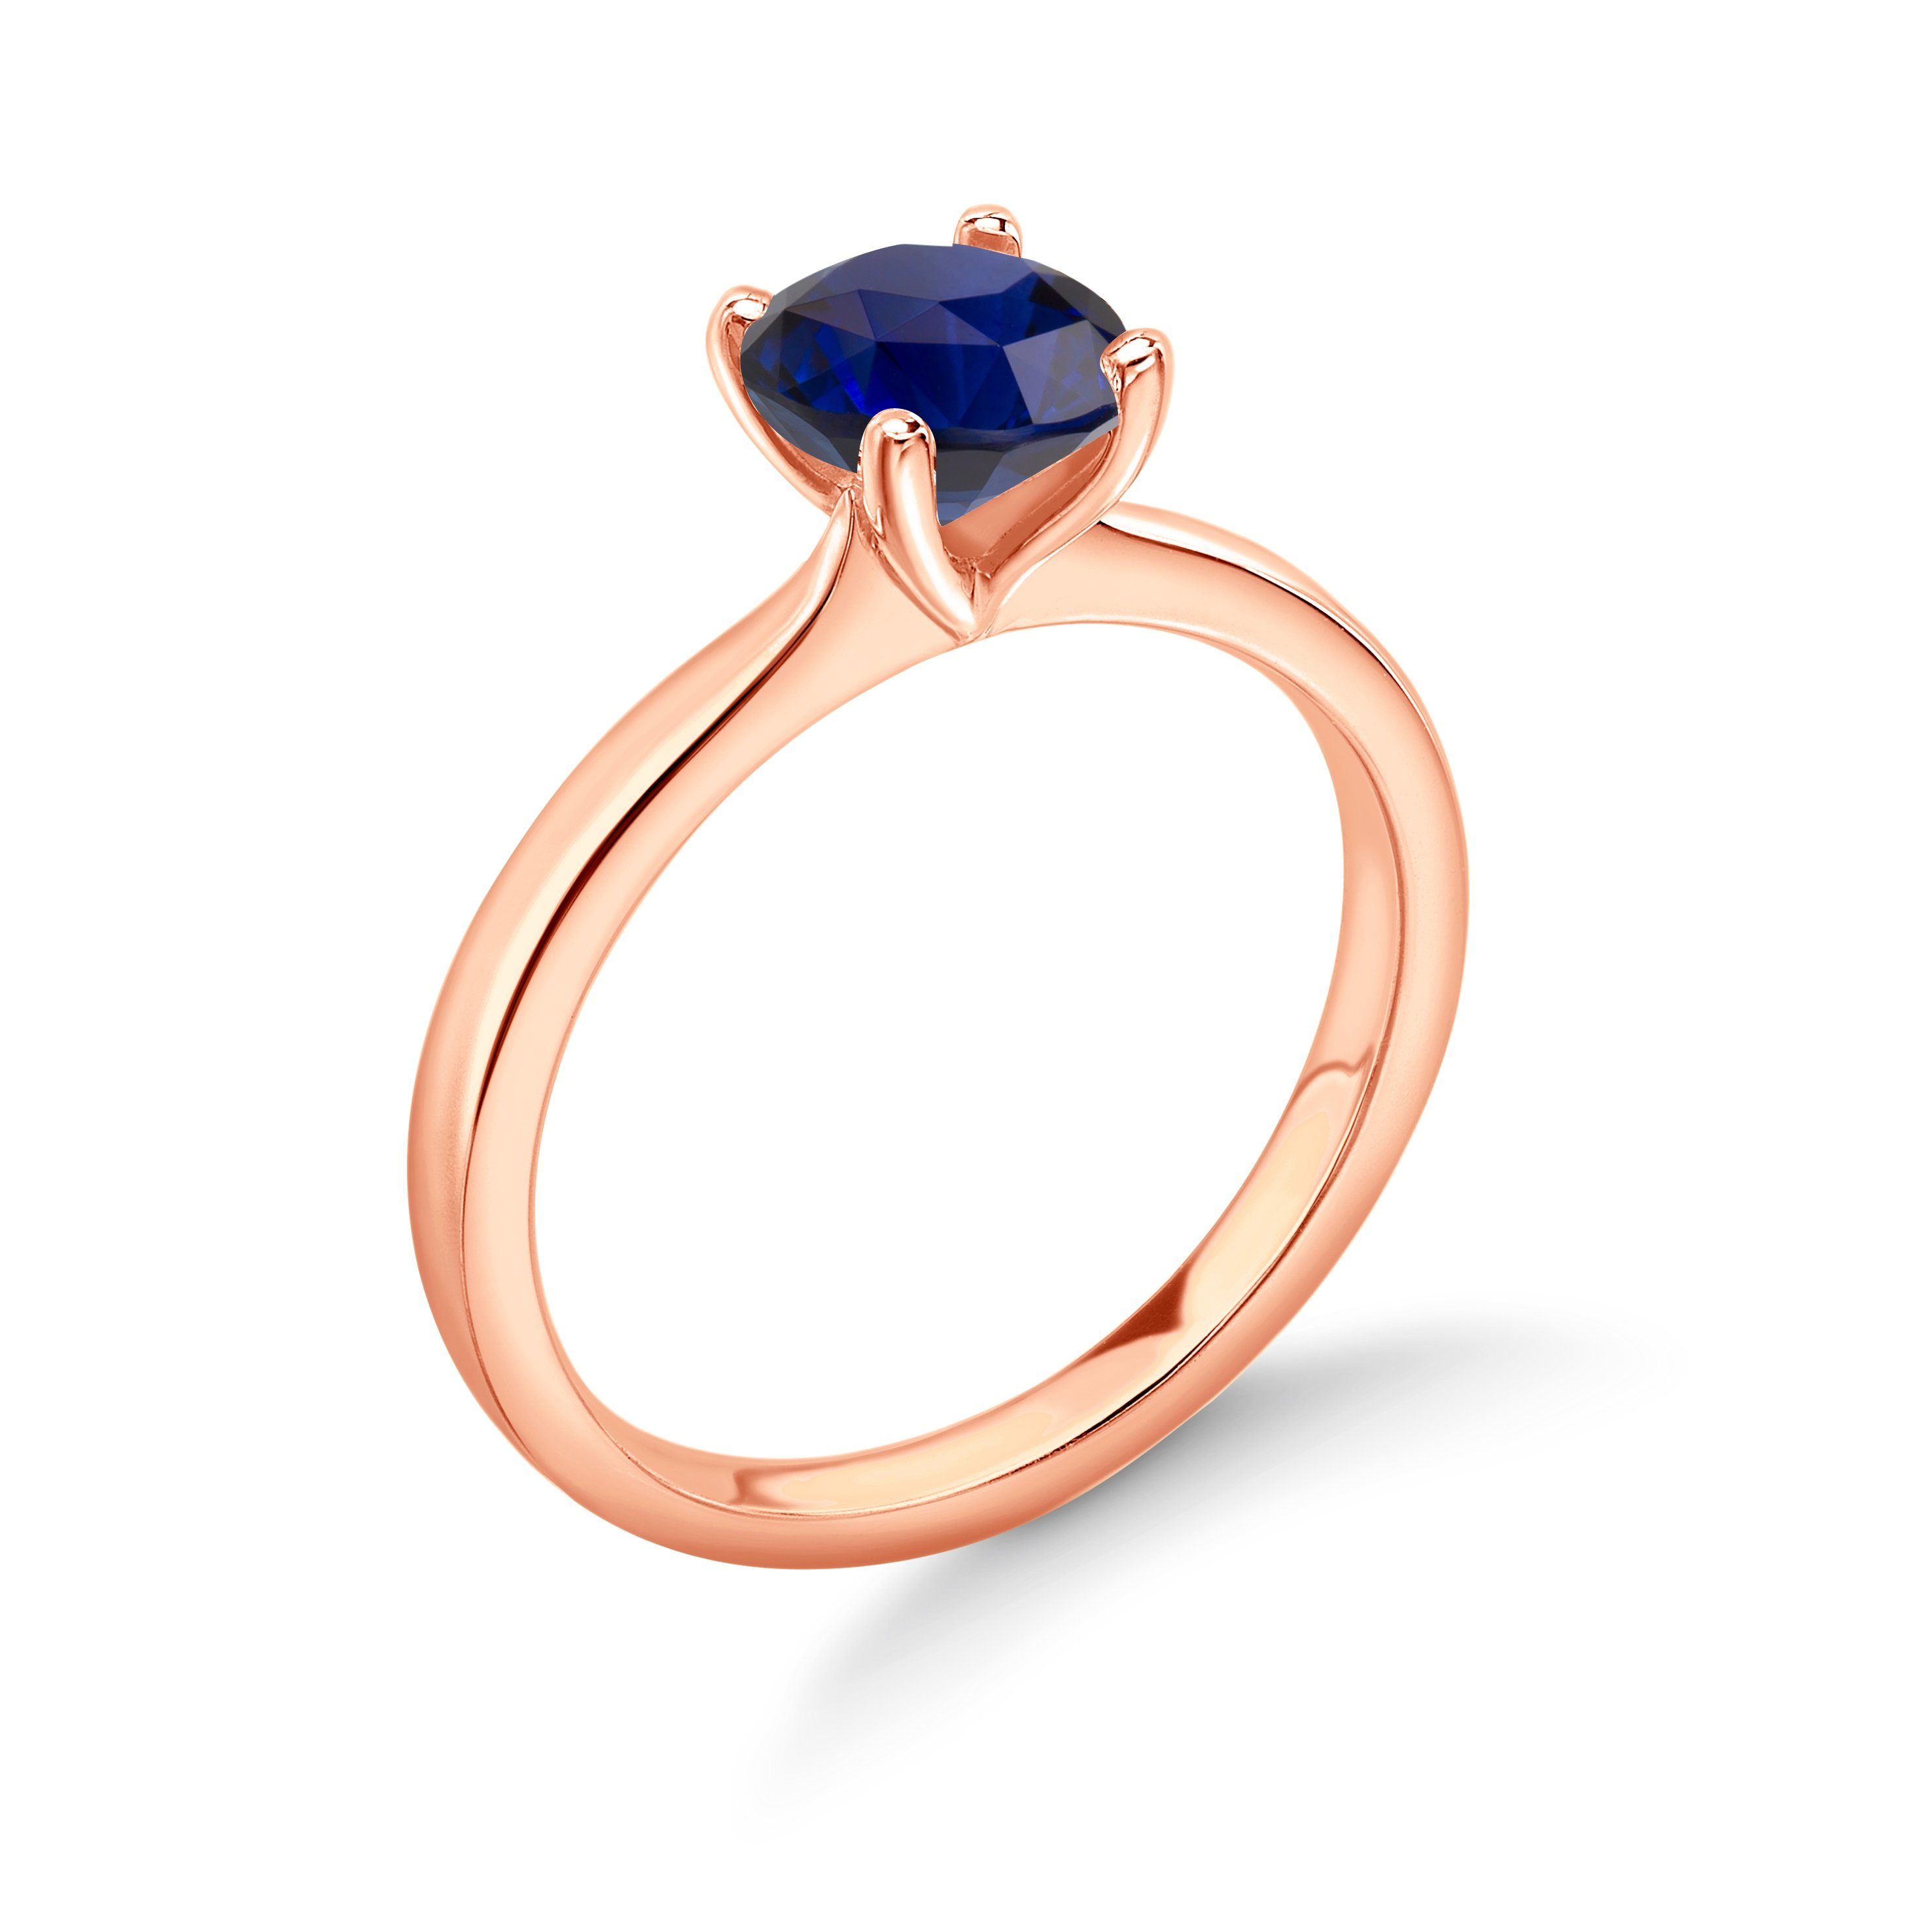 Round Solitaire Sapphire Engagement Rings White/Rose Gold & Platinum